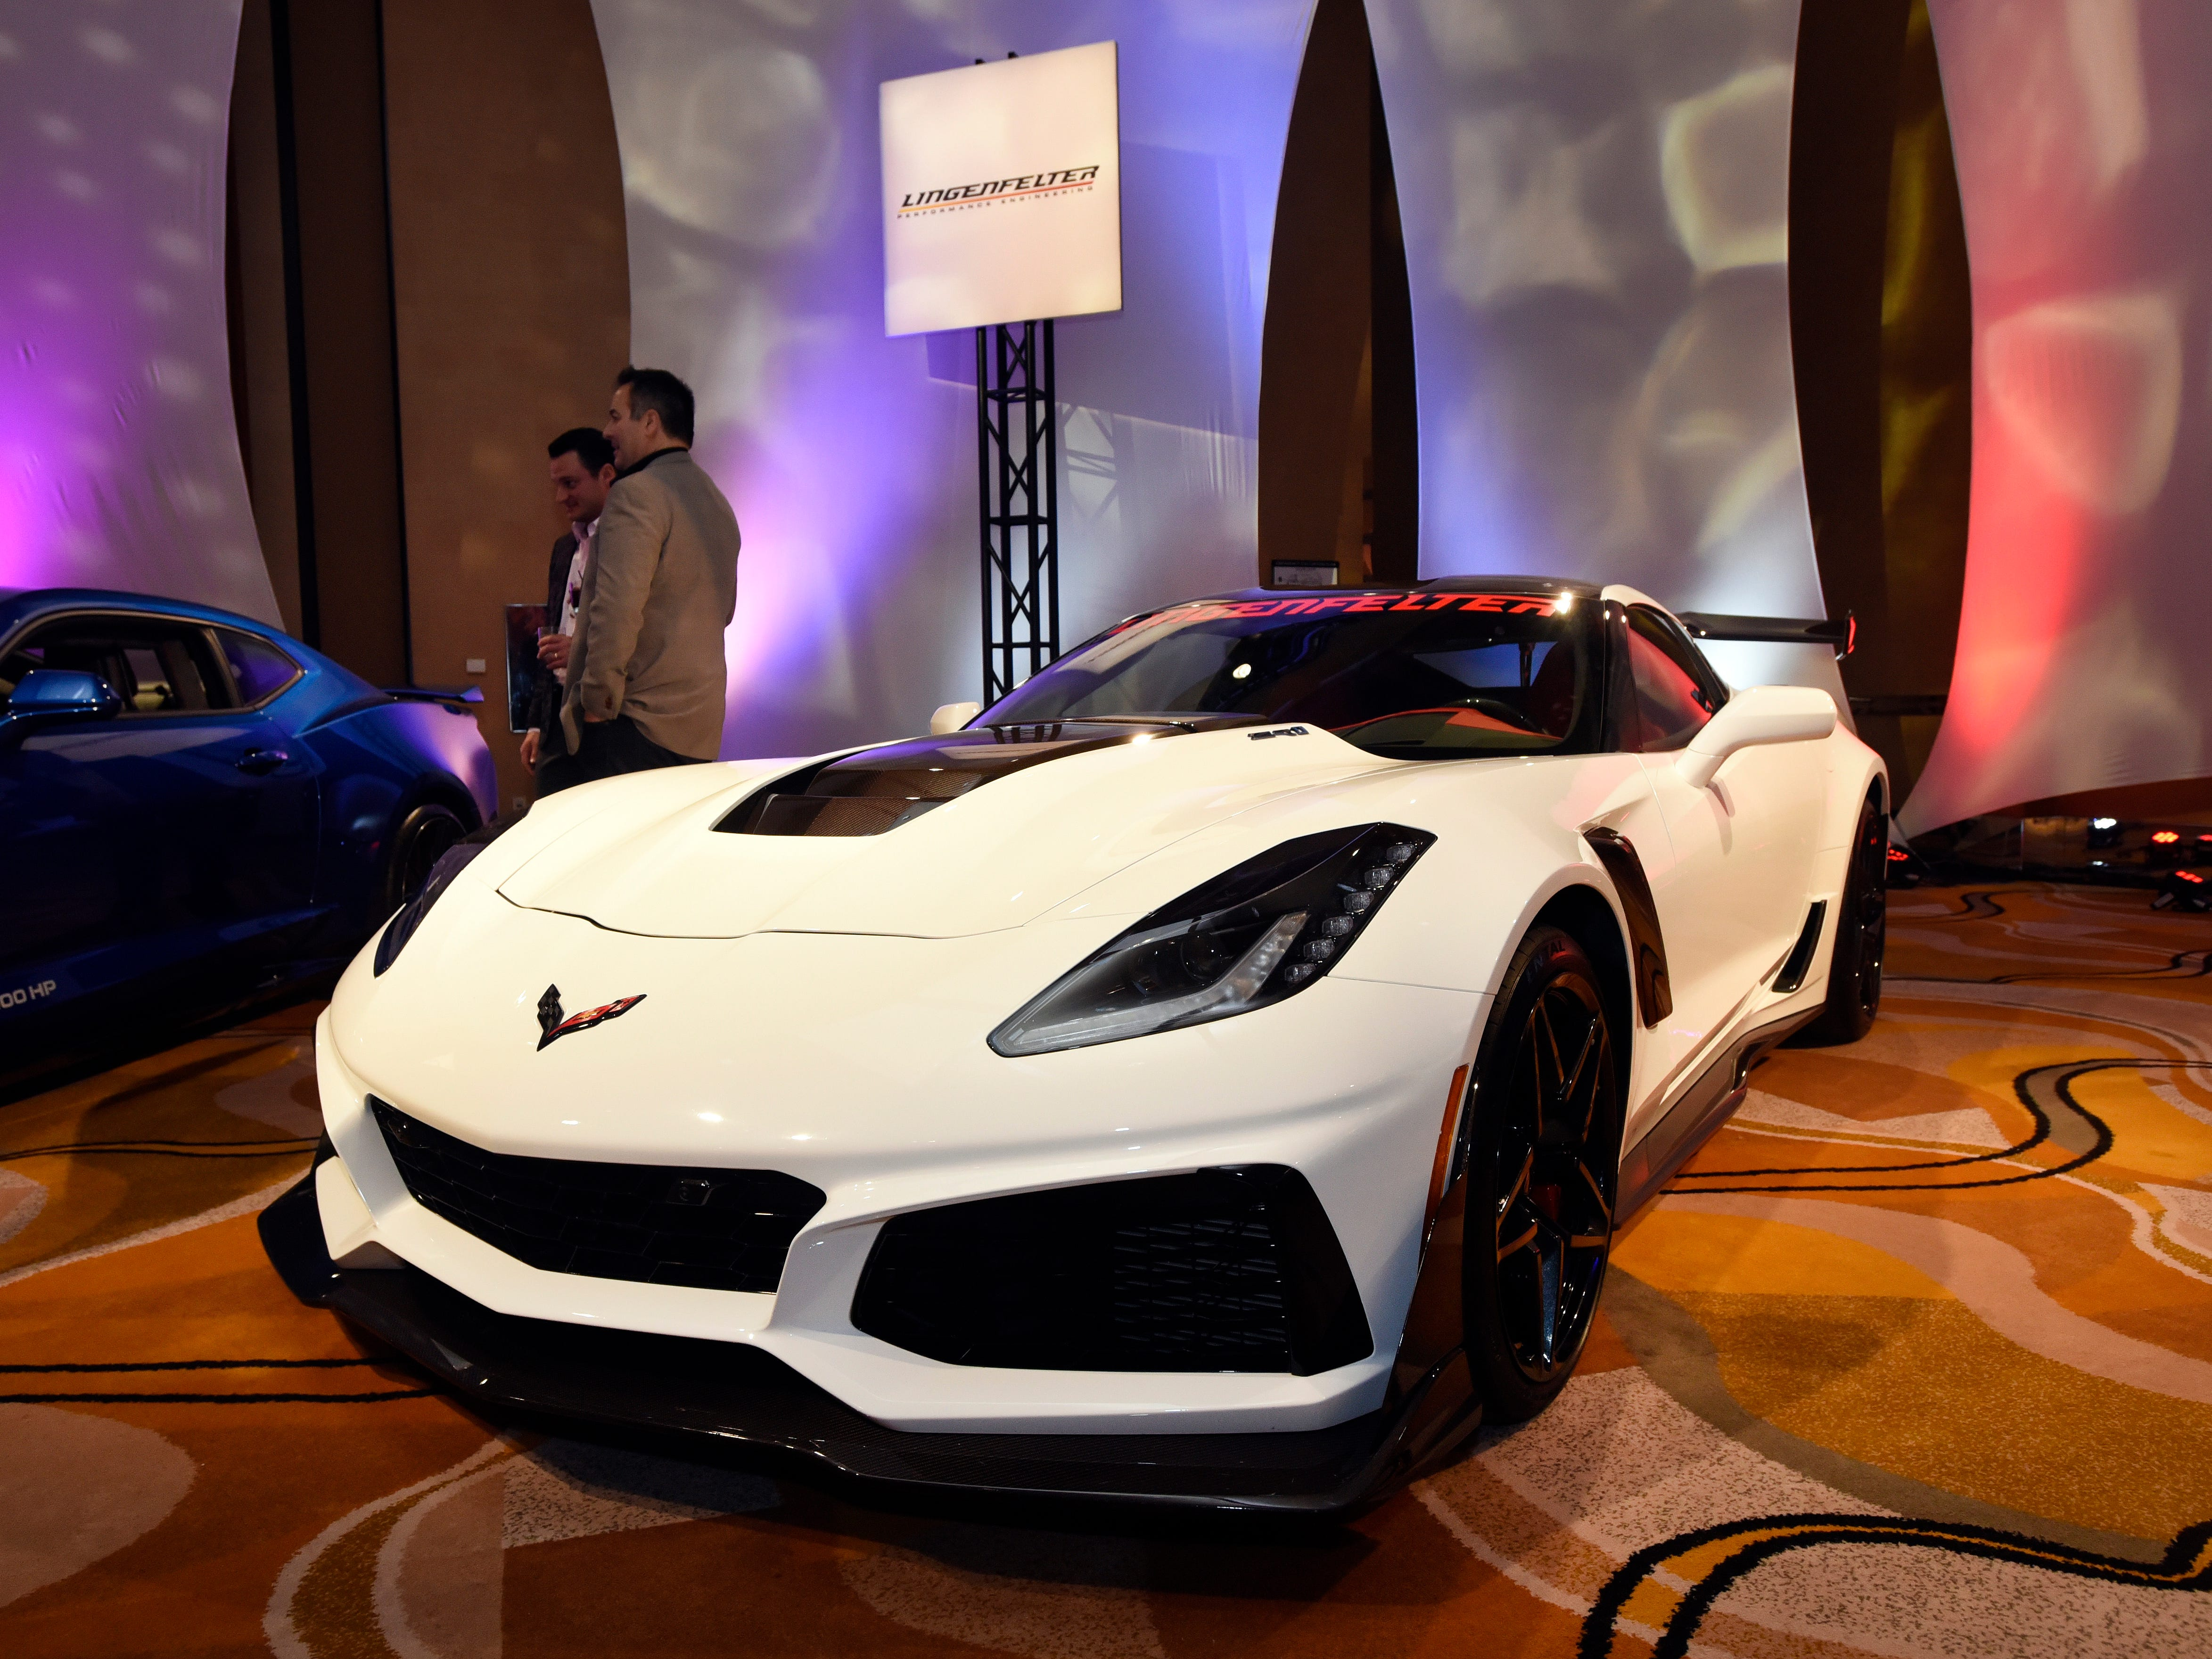 A Lingenfelter luxury vehicle is parked on floor of The Gallery.